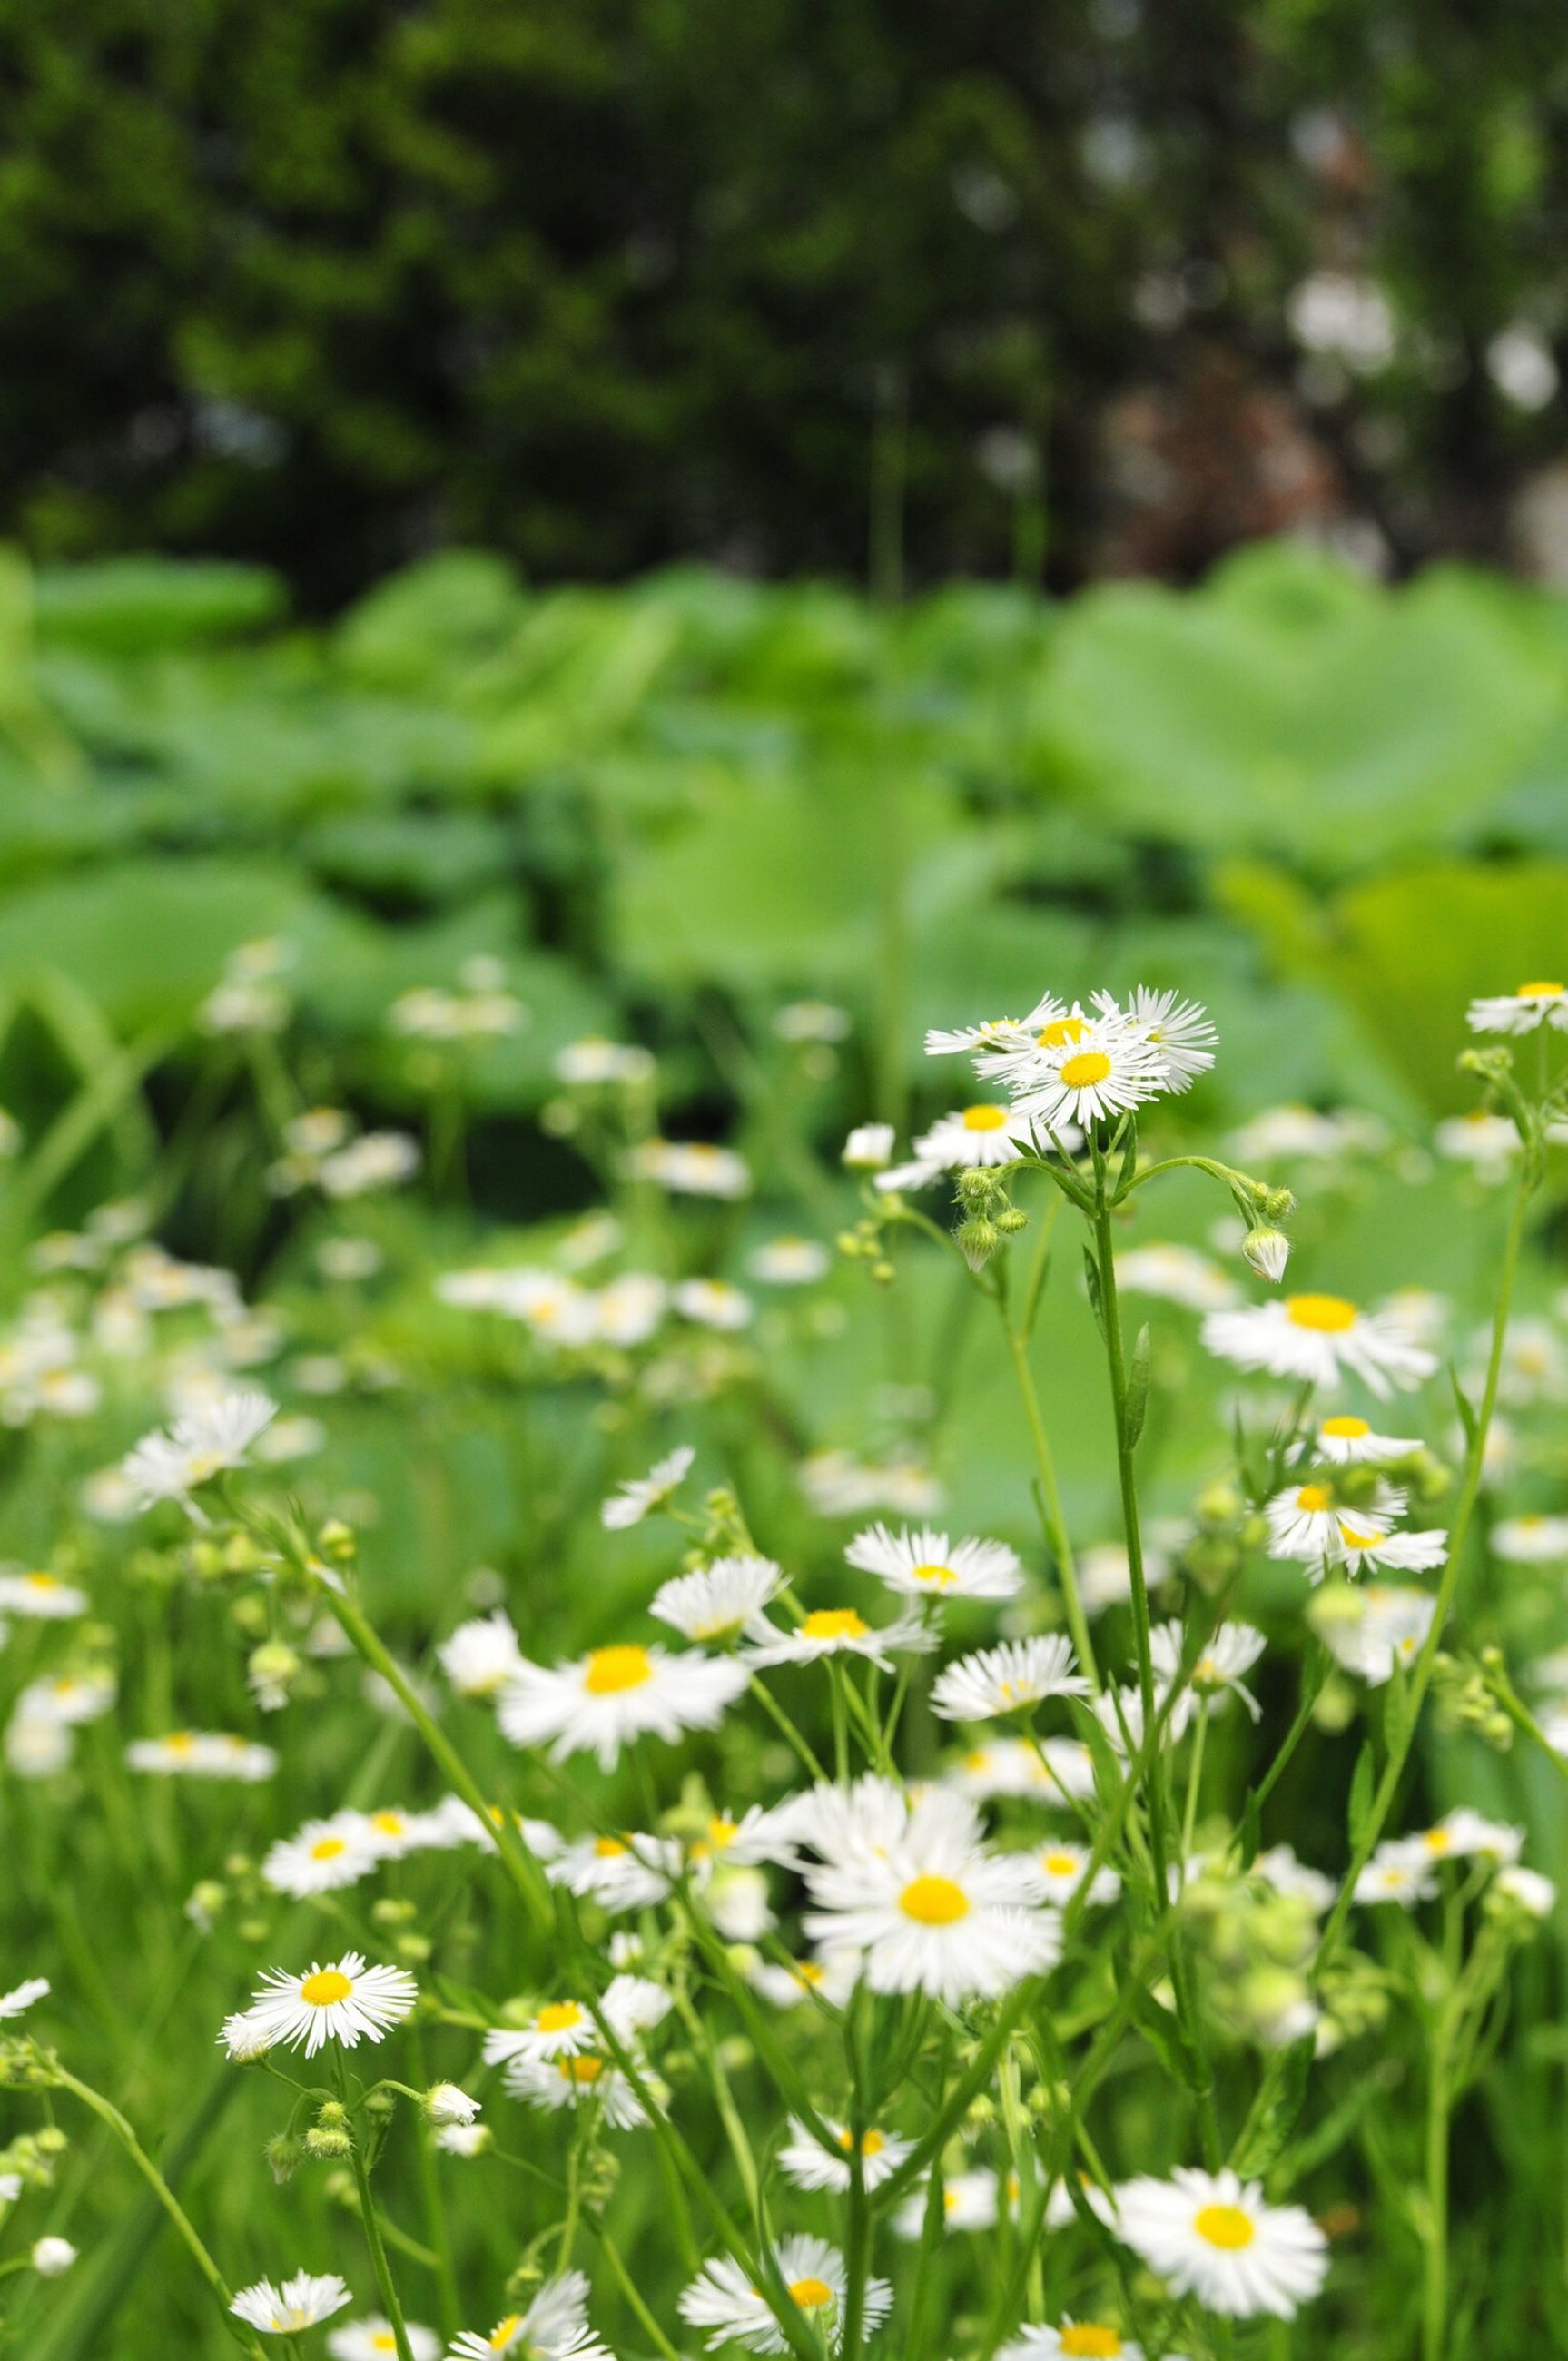 flower, freshness, fragility, growth, petal, beauty in nature, blooming, white color, flower head, plant, daisy, nature, field, green color, focus on foreground, stem, wildflower, in bloom, day, selective focus